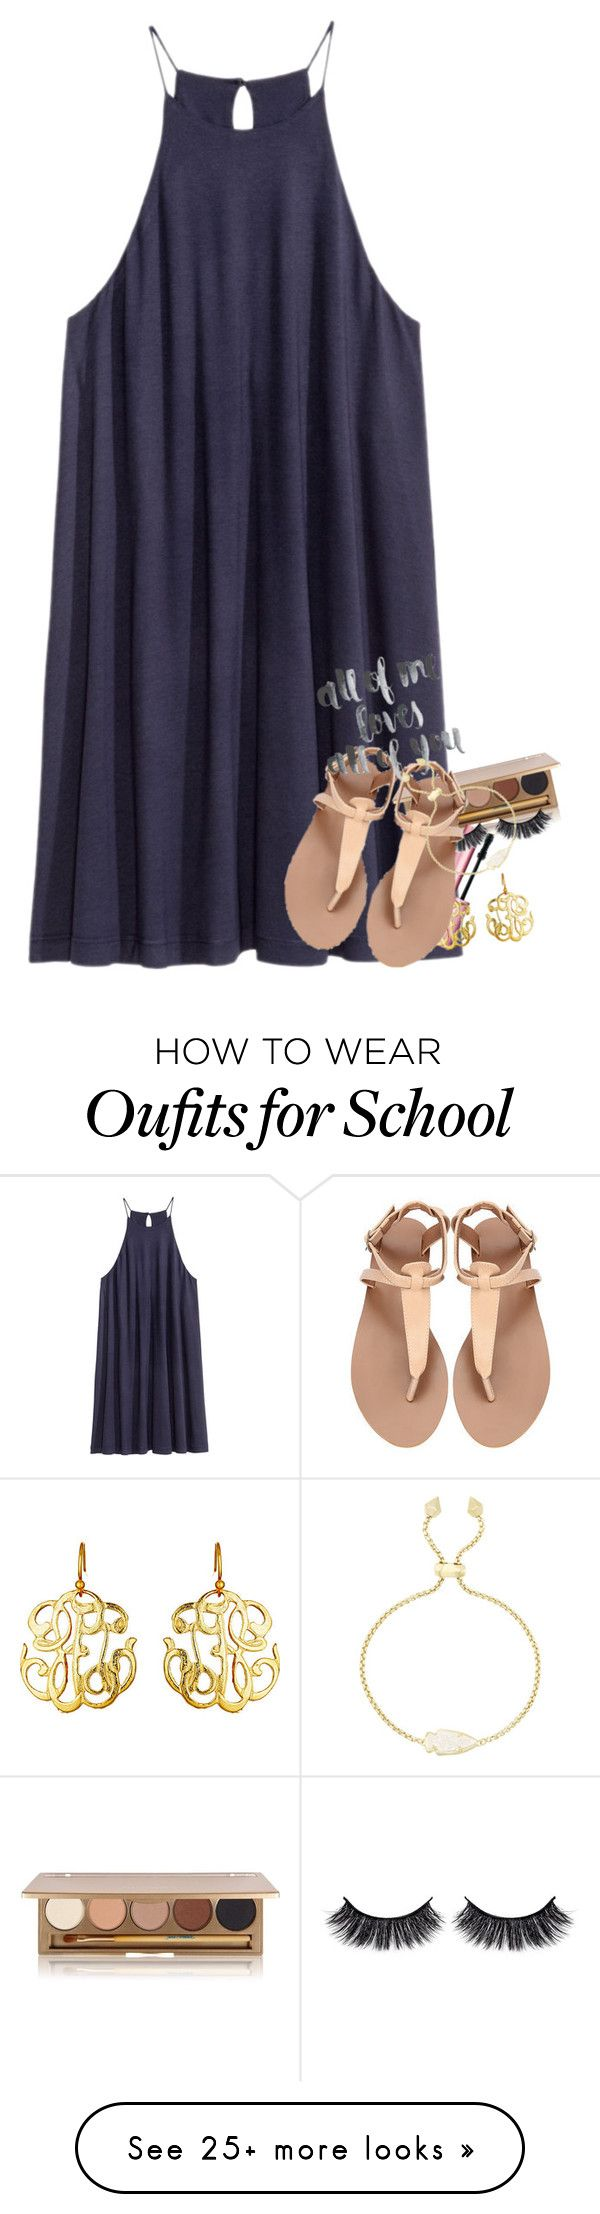 """When does school end for you?(June 21st)"" by haileymartin12 on Polyvore featuring H&M, Jane Iredale, Too Faced Cosmetics, Susan Shaw, Battington and Kendra Scott"